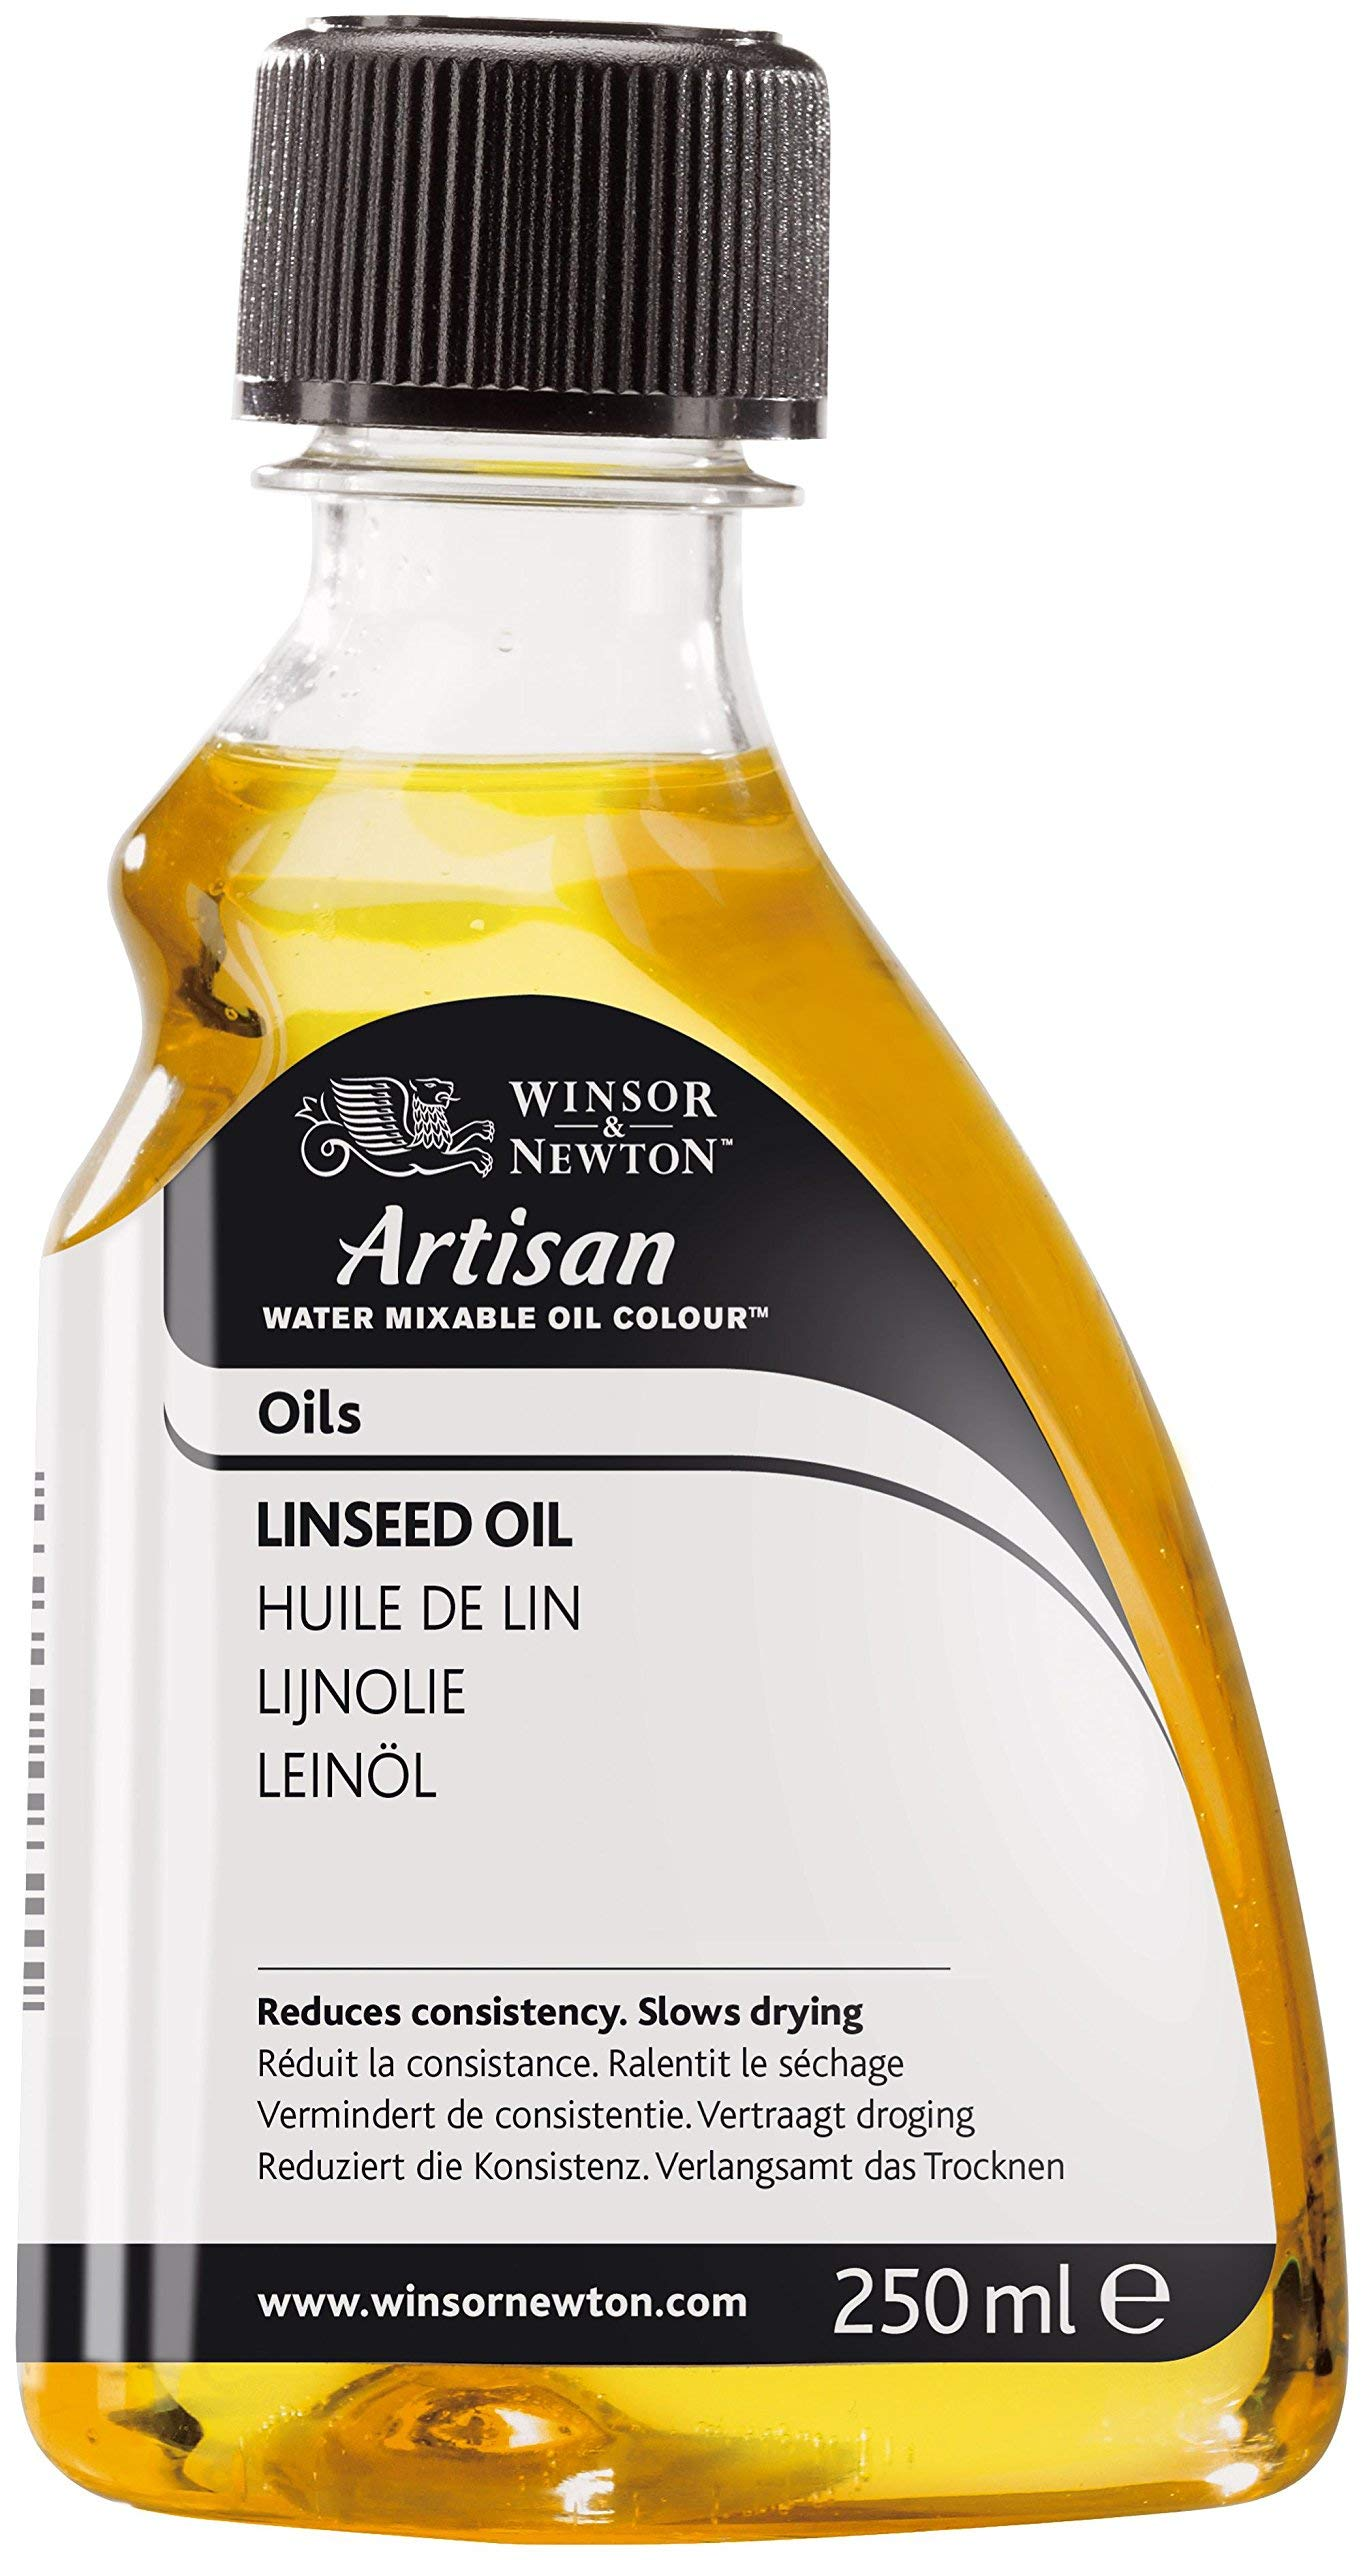 W&N - Artisan Water Mixable Linseed Oil -250ml